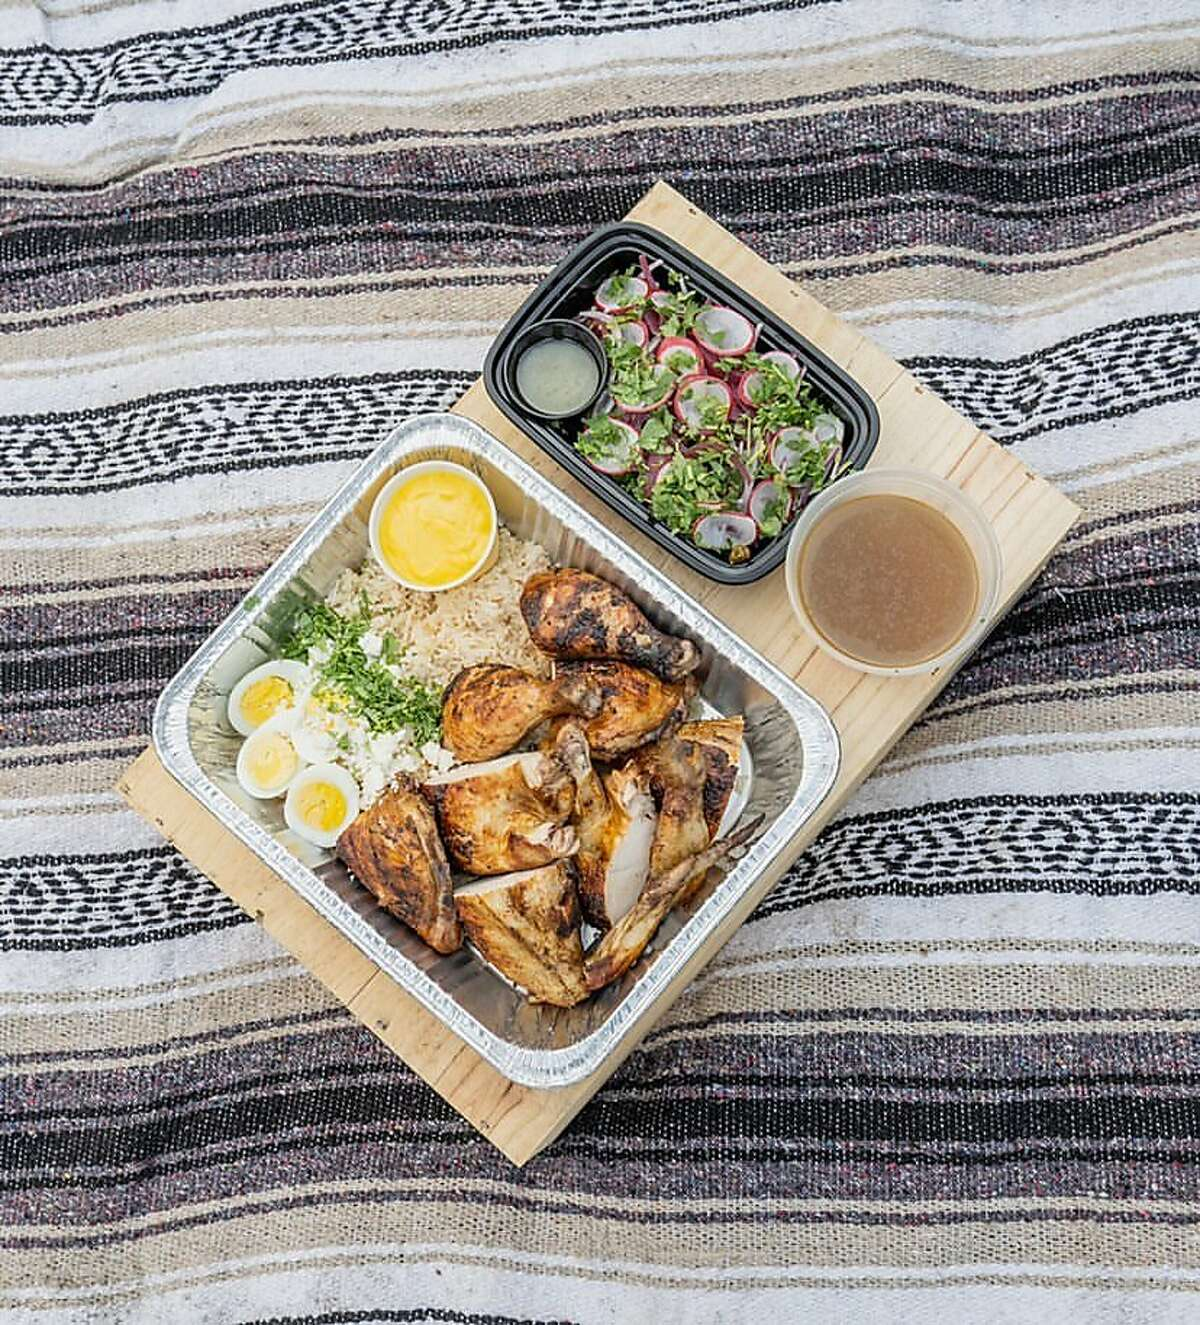 A chicken picnic meal prepared by Keone Koki and Bilal Ali as part of their latest project, Michoz, at the Hidden Cafe in Berkeley.